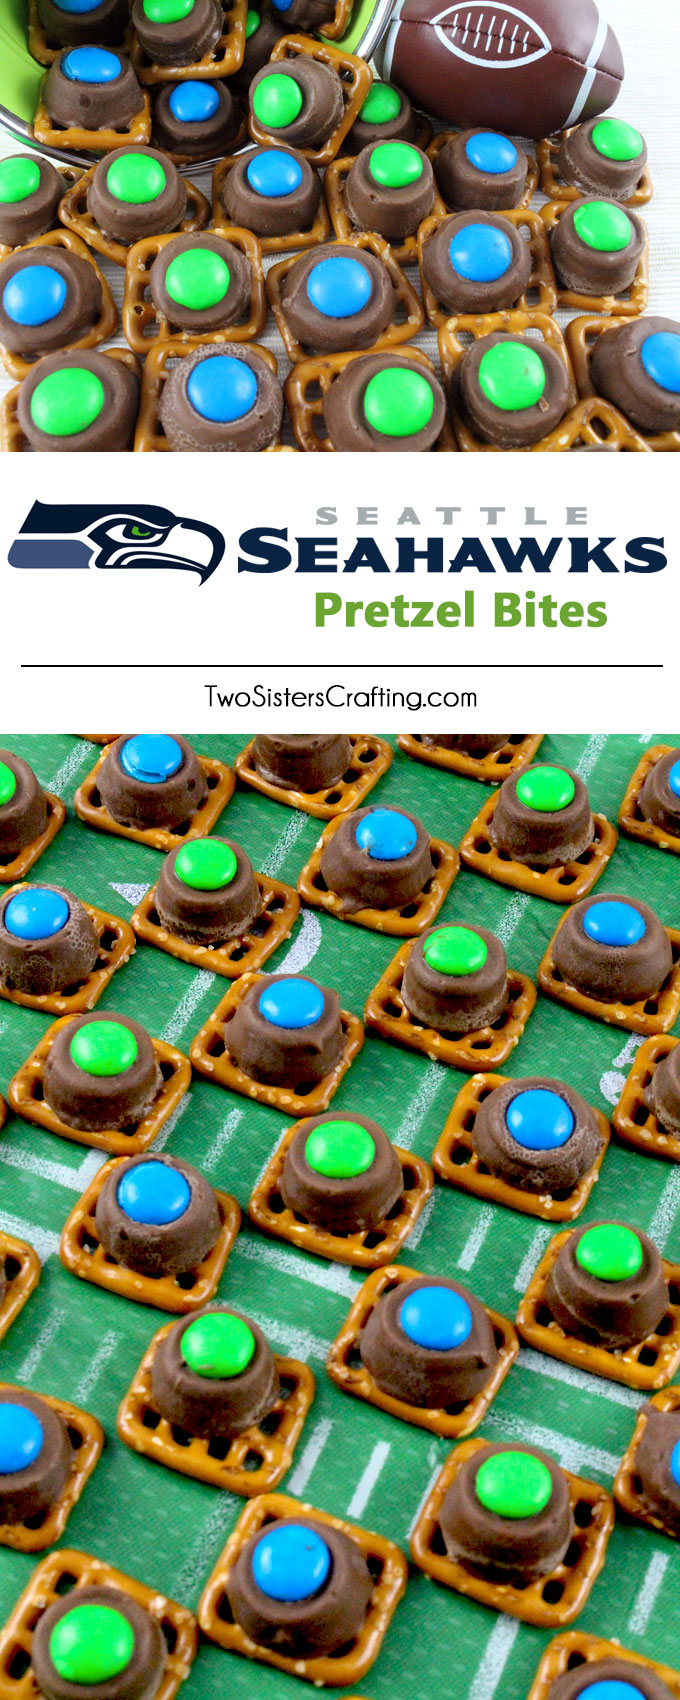 Our easy to make Seattle Seahawks Pretzel Bites are yummy bites of sweet and salty Football Game Day goodness. They are perfect as a little extra treat at a NFL playoff party, a Super Bowl party or as a special dessert for the Seattle Seahawks fan in your life. Follow us for more fun Super Bowl Food Ideas.